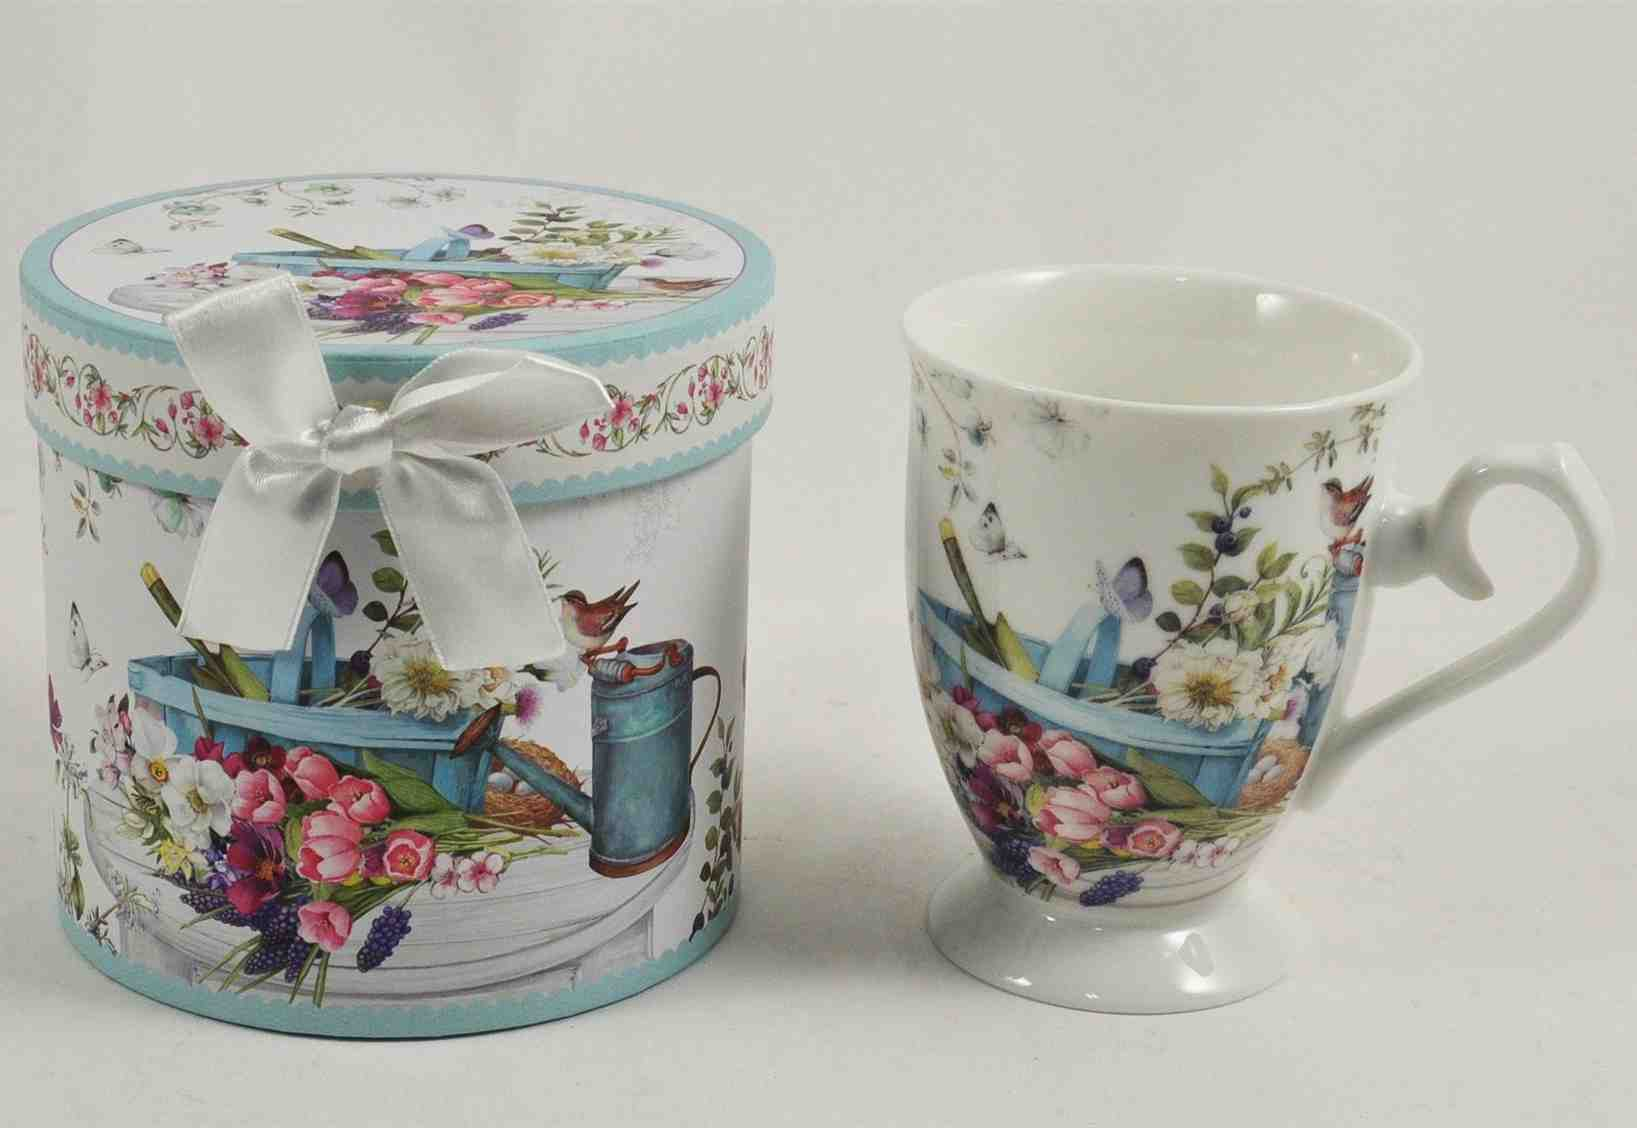 Watercan Floral Mug with Giftbox